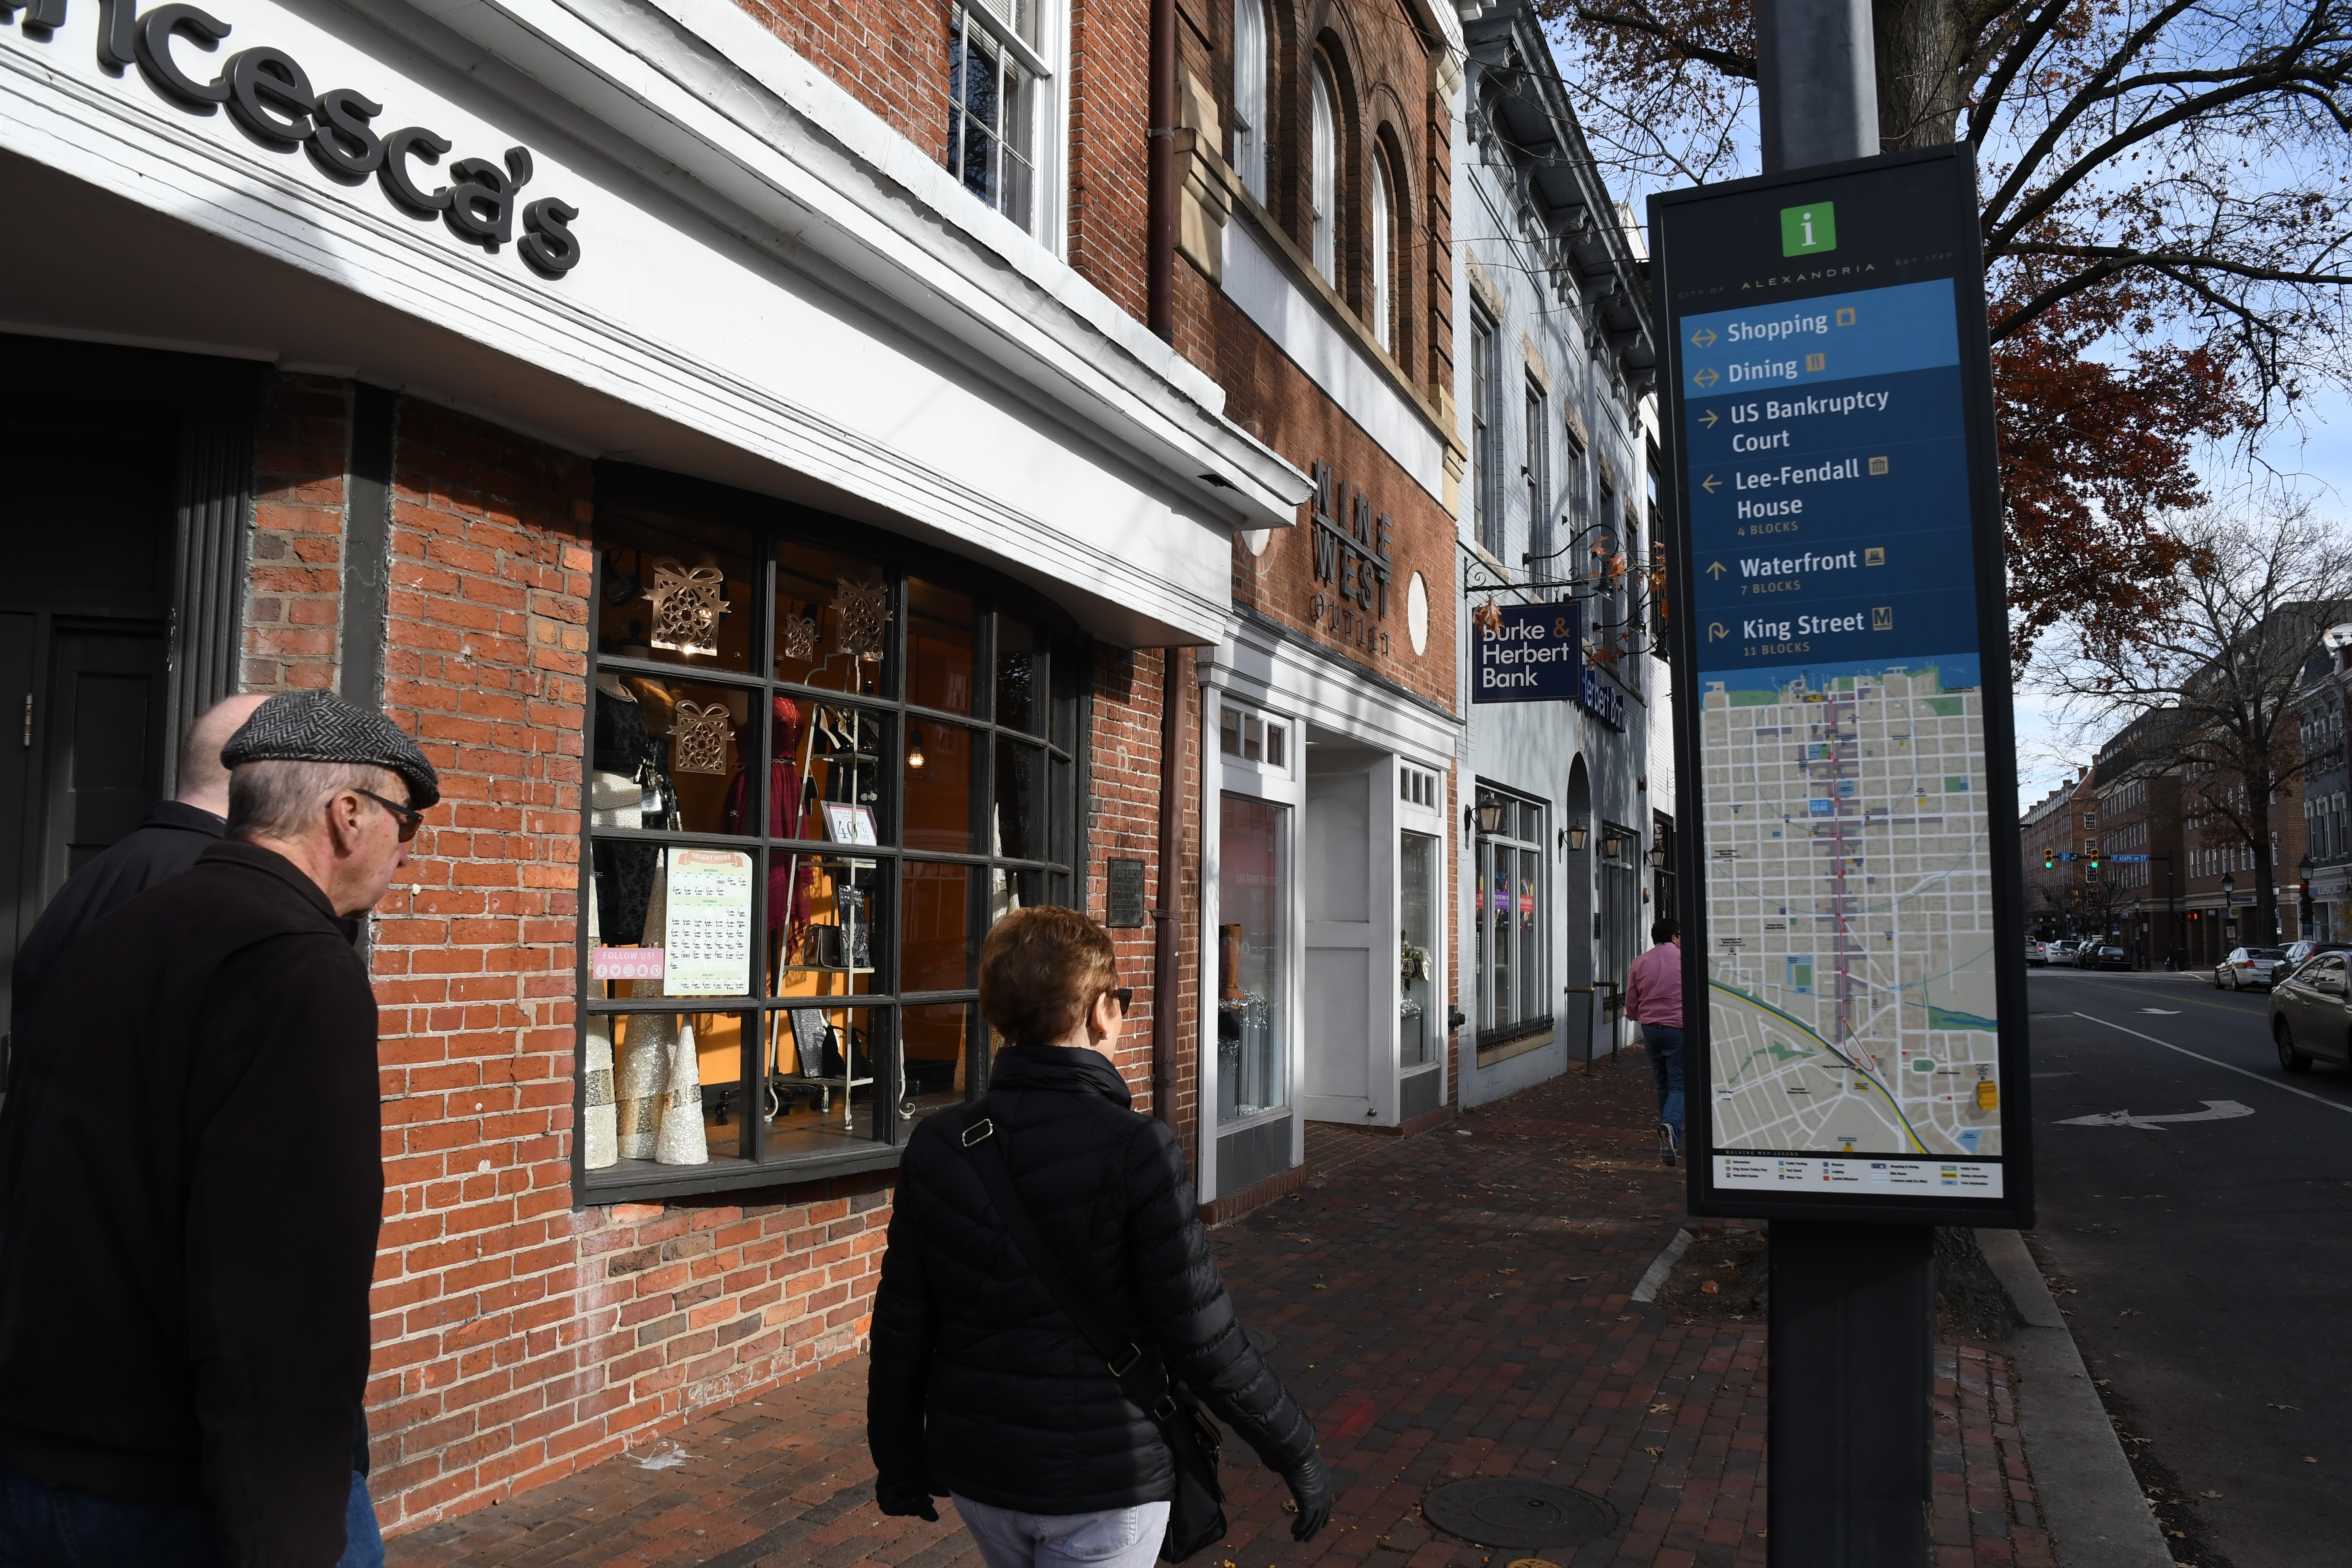 Wayfinding Signage in Old Town Alexandria Virginia